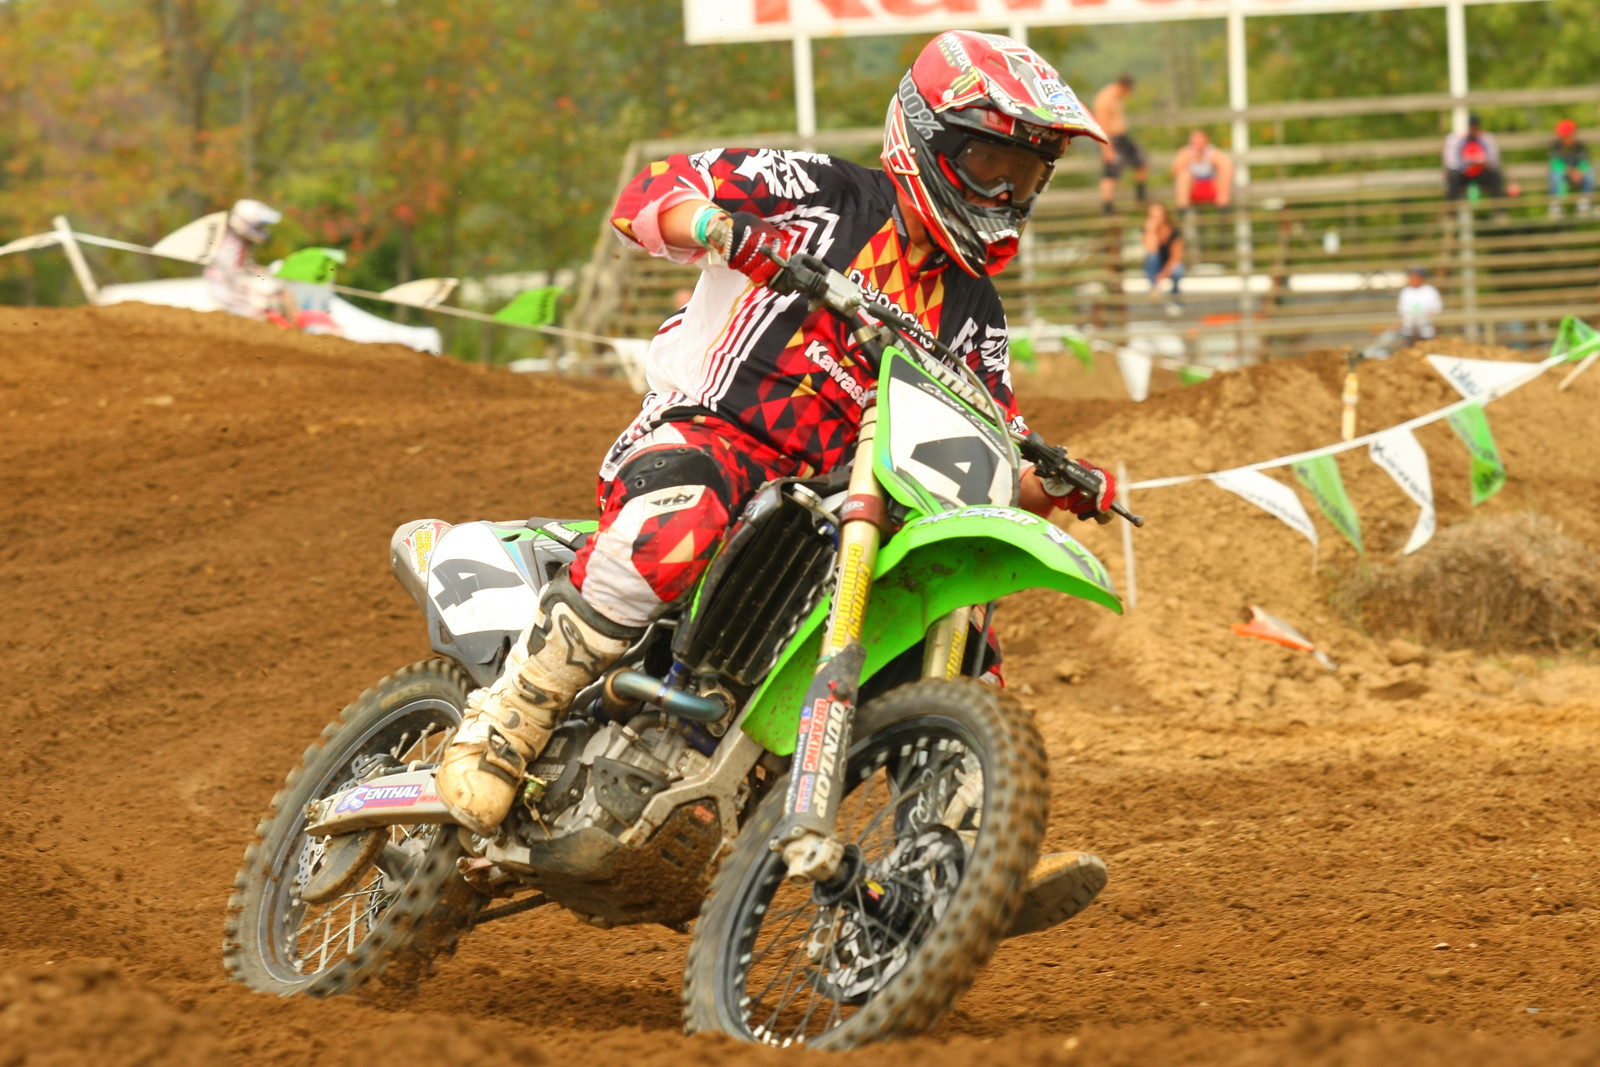 Scott Sheak - lukaitis9 - Motocross Pictures - Vital MX